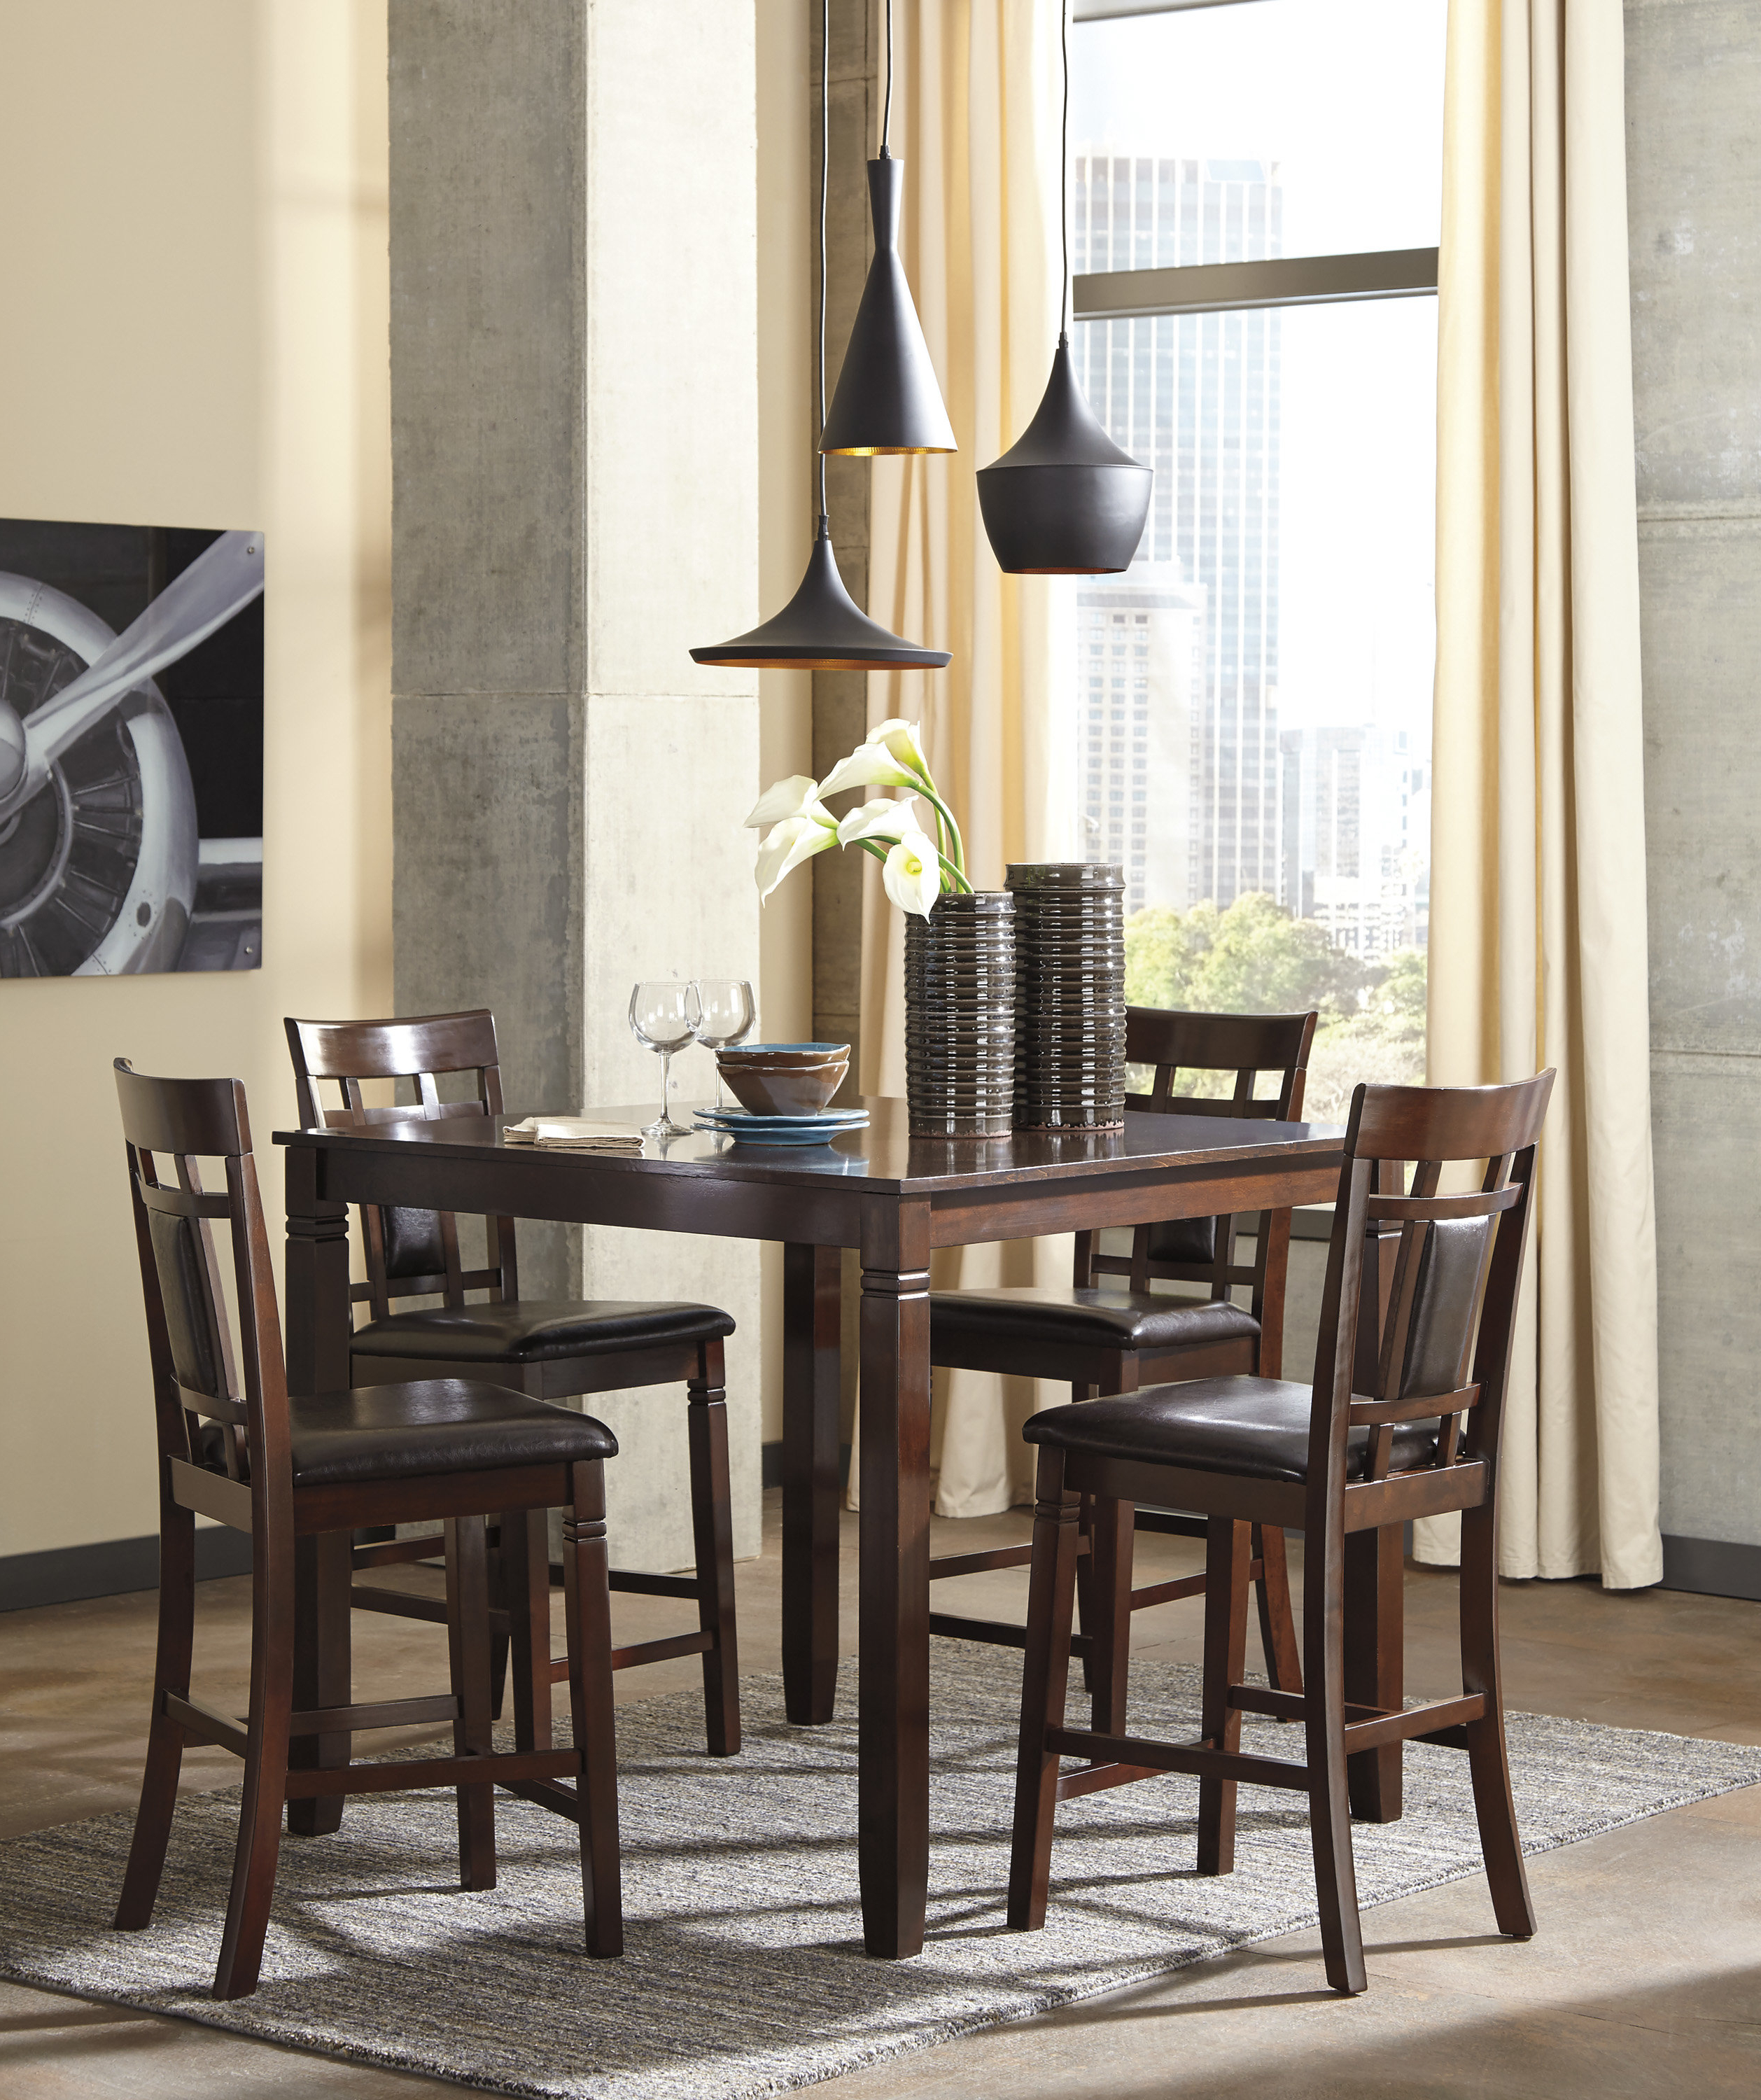 Joss & Main Throughout 2020 Bettencourt 3 Piece Counter Height Dining Sets (Gallery 22 of 25)